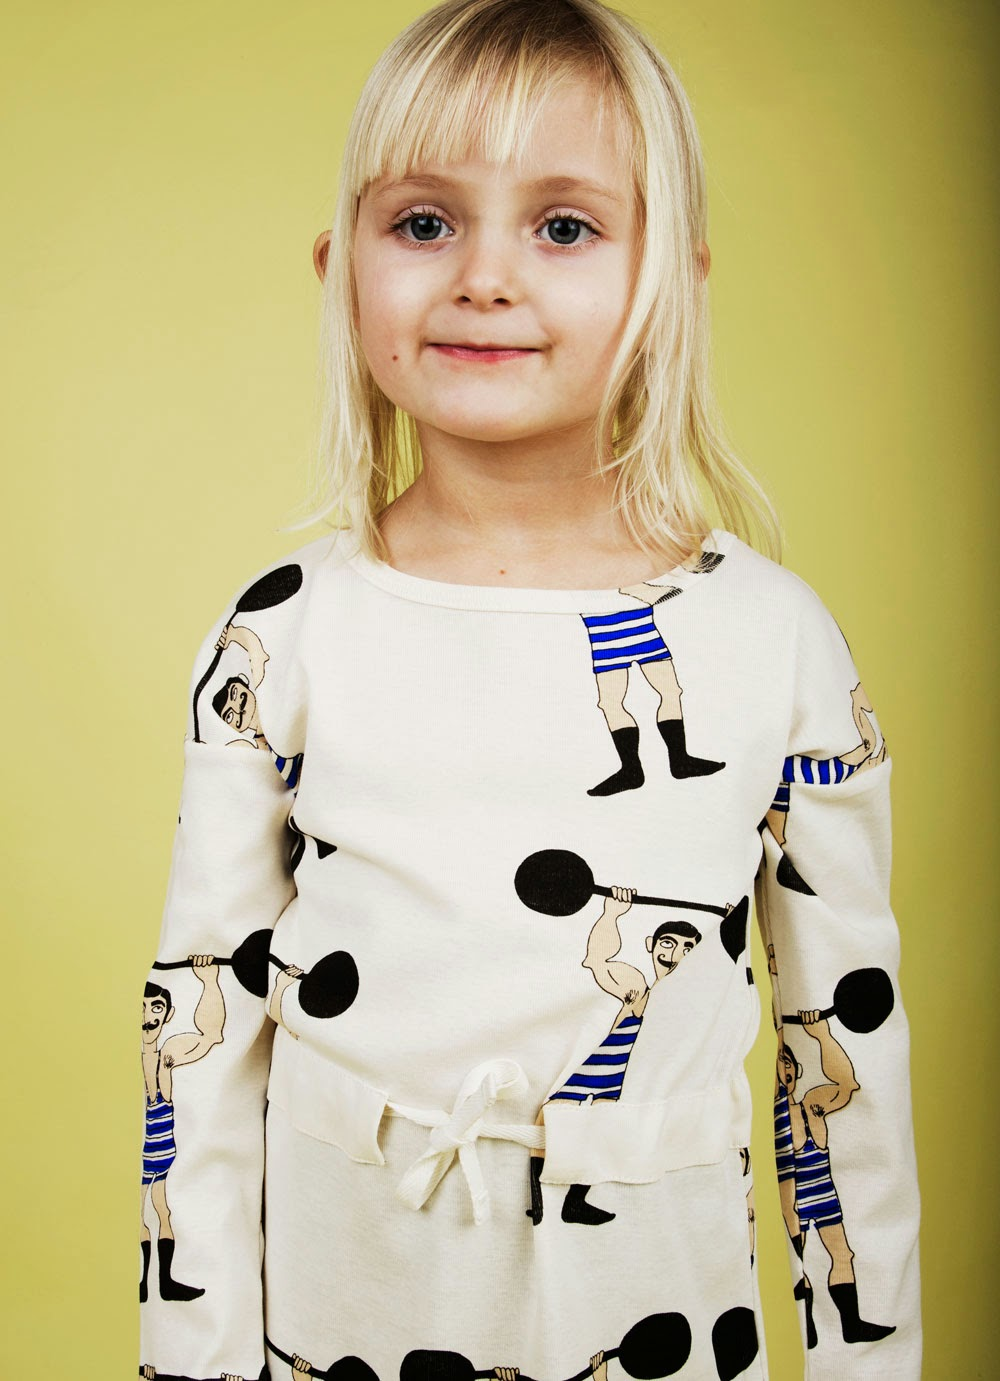 Retro weightlifter print by Mini Rodini for Autumn/Winter kidswear collection